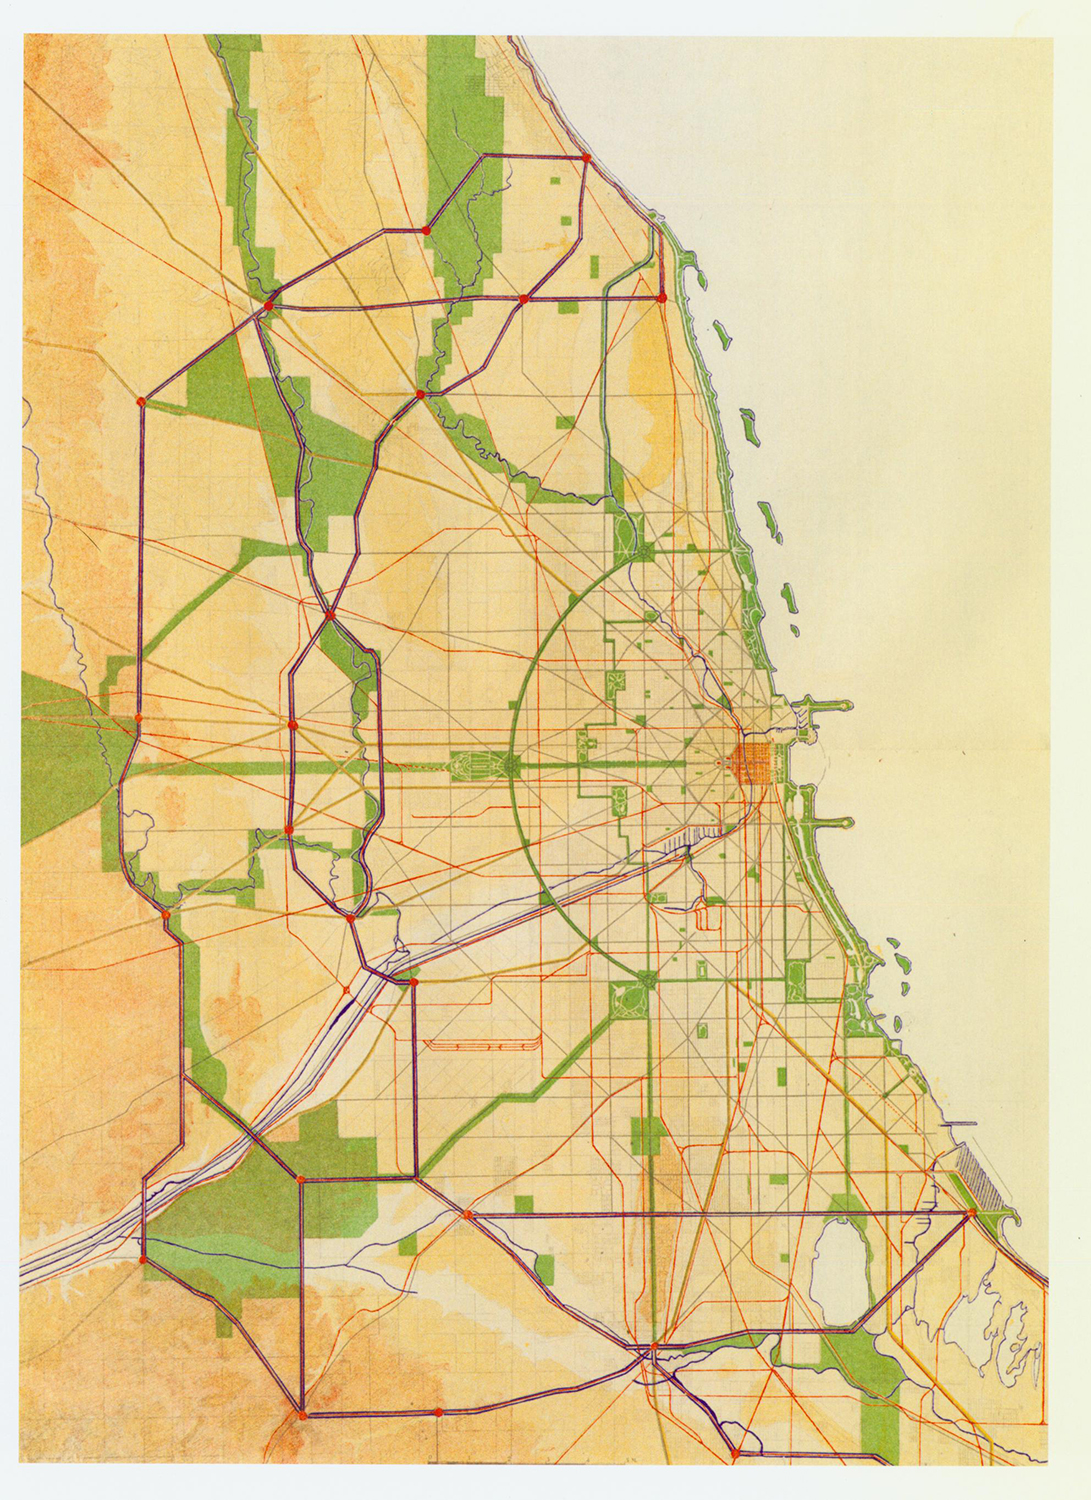 XLIV: Map of Chicago's proposed System of Boulevards, Parks and Forest Preserves